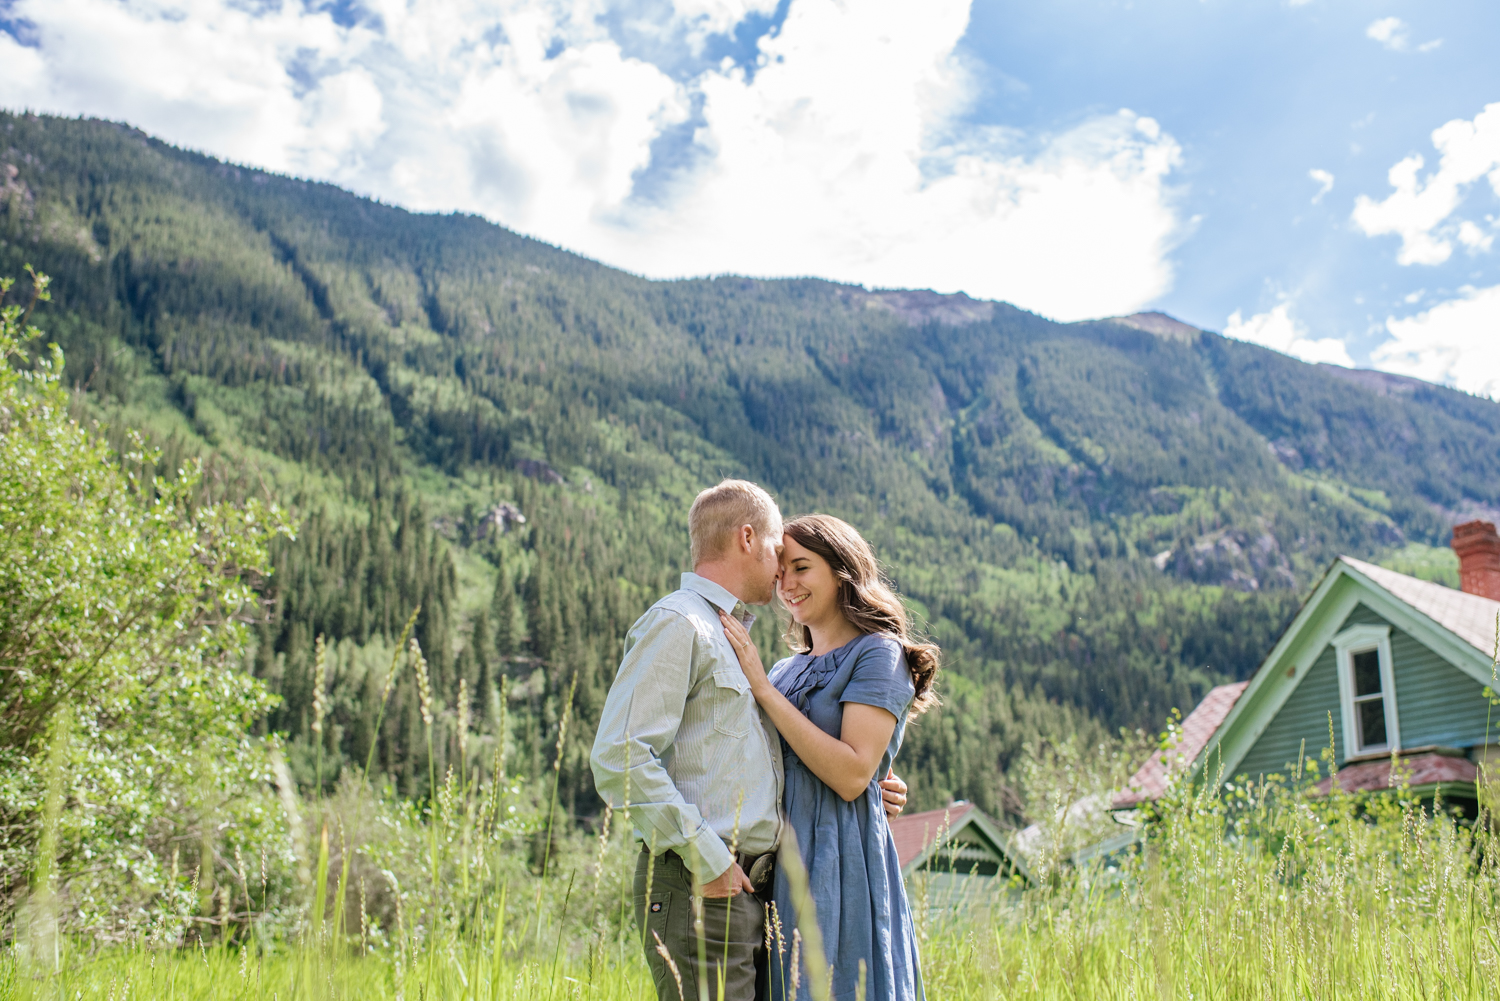 colorado-engagement-photographer-meredith-amadee-photography-97.jpg